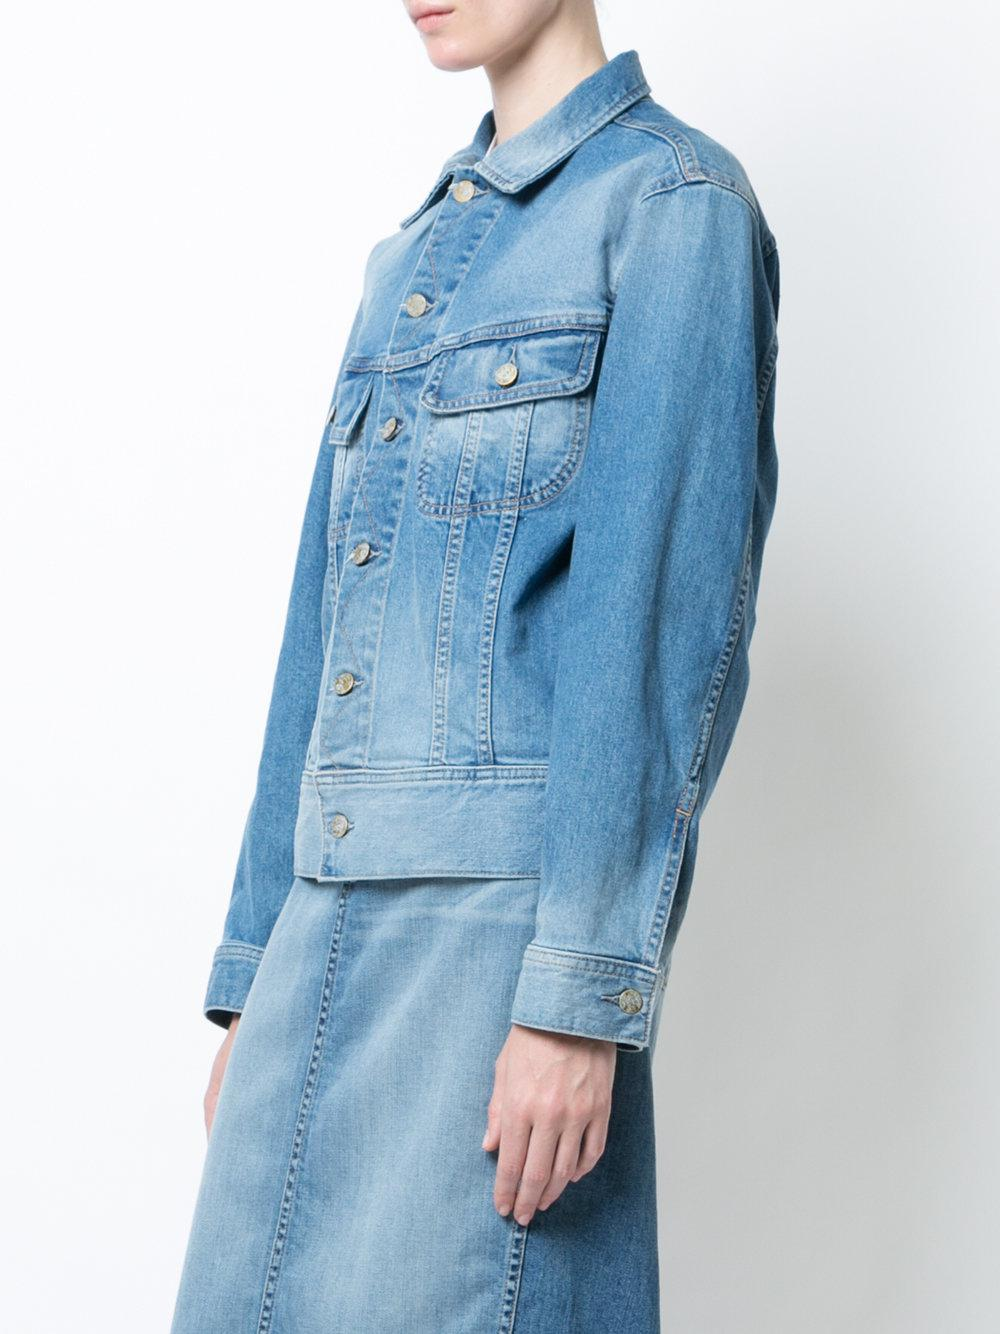 Oscar de la Renta appliqué detail denim jacket Limited Edition Sale Online 51h99BH